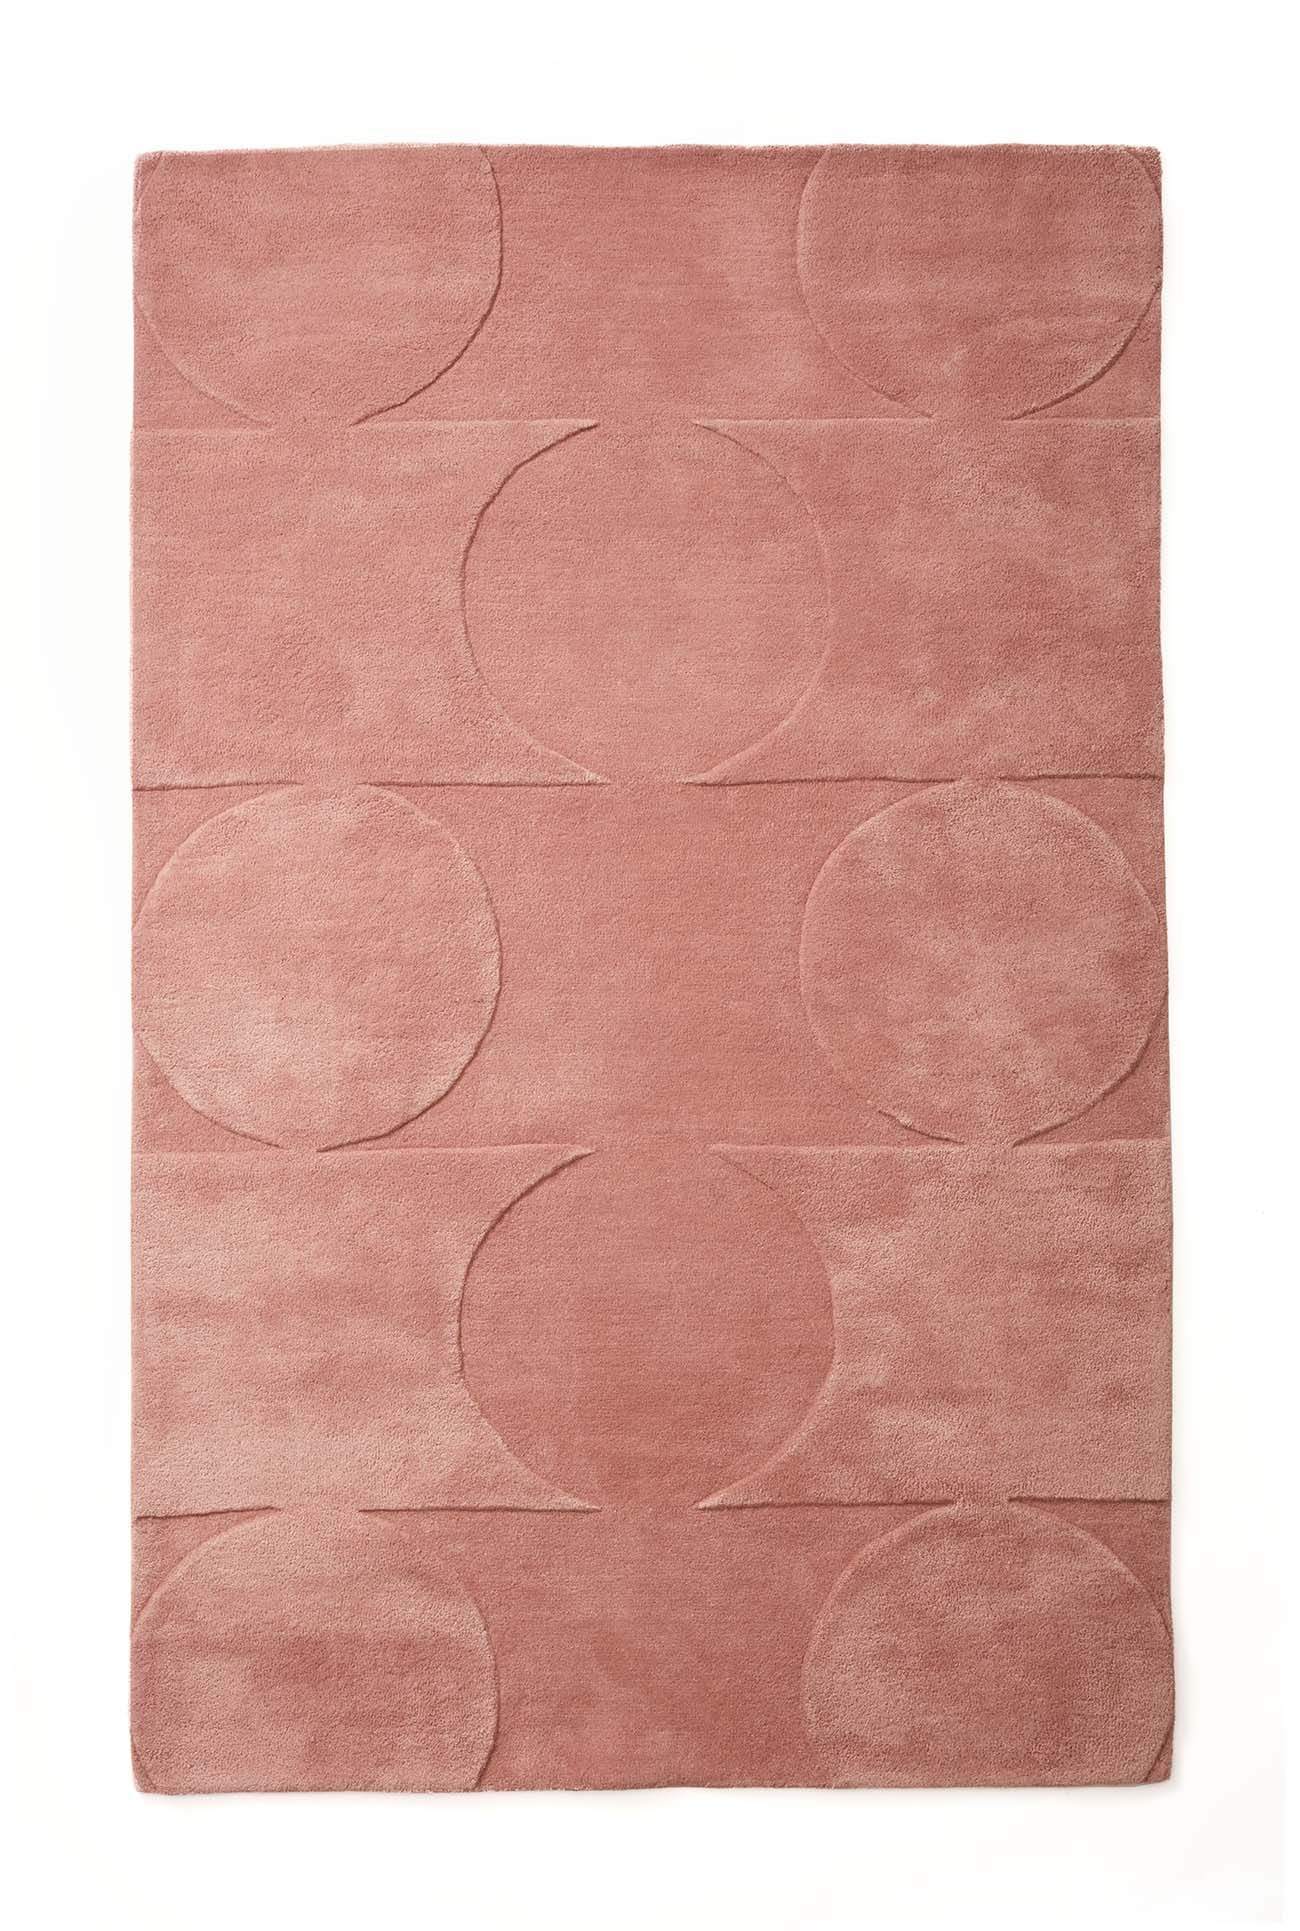 We May Have Just Found The Holy Grail Of Rugs Sight Unseen Rug Texture Geometric Rug Rugs On Carpet